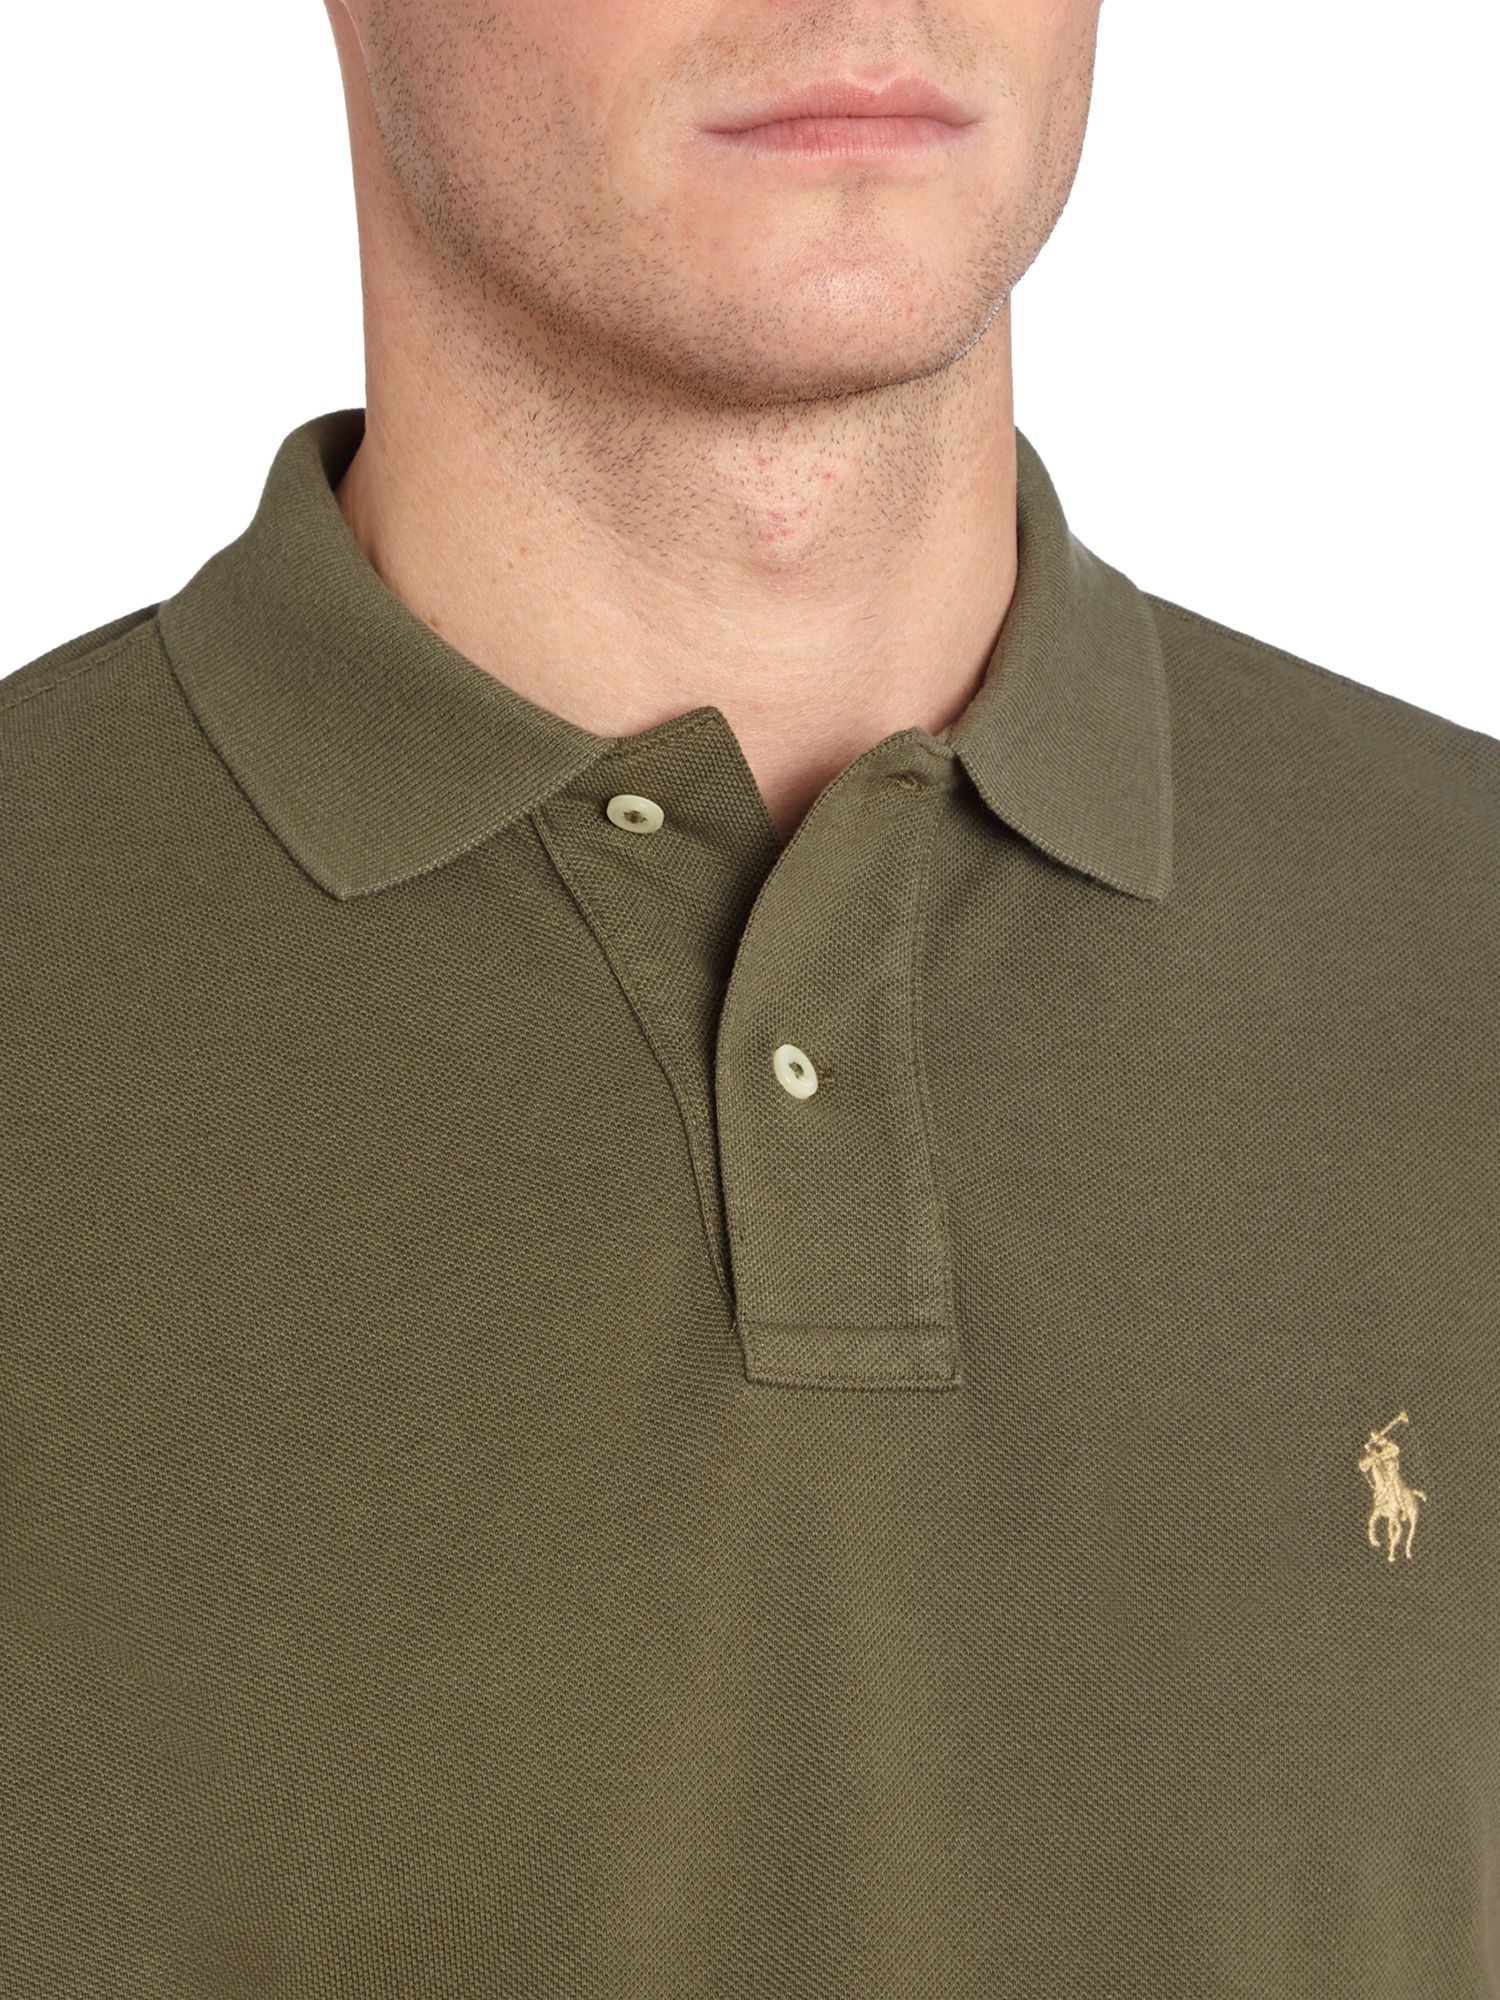 Polo ralph lauren Custom Fit Mesh Polo Shirt in Green for Men | Lyst